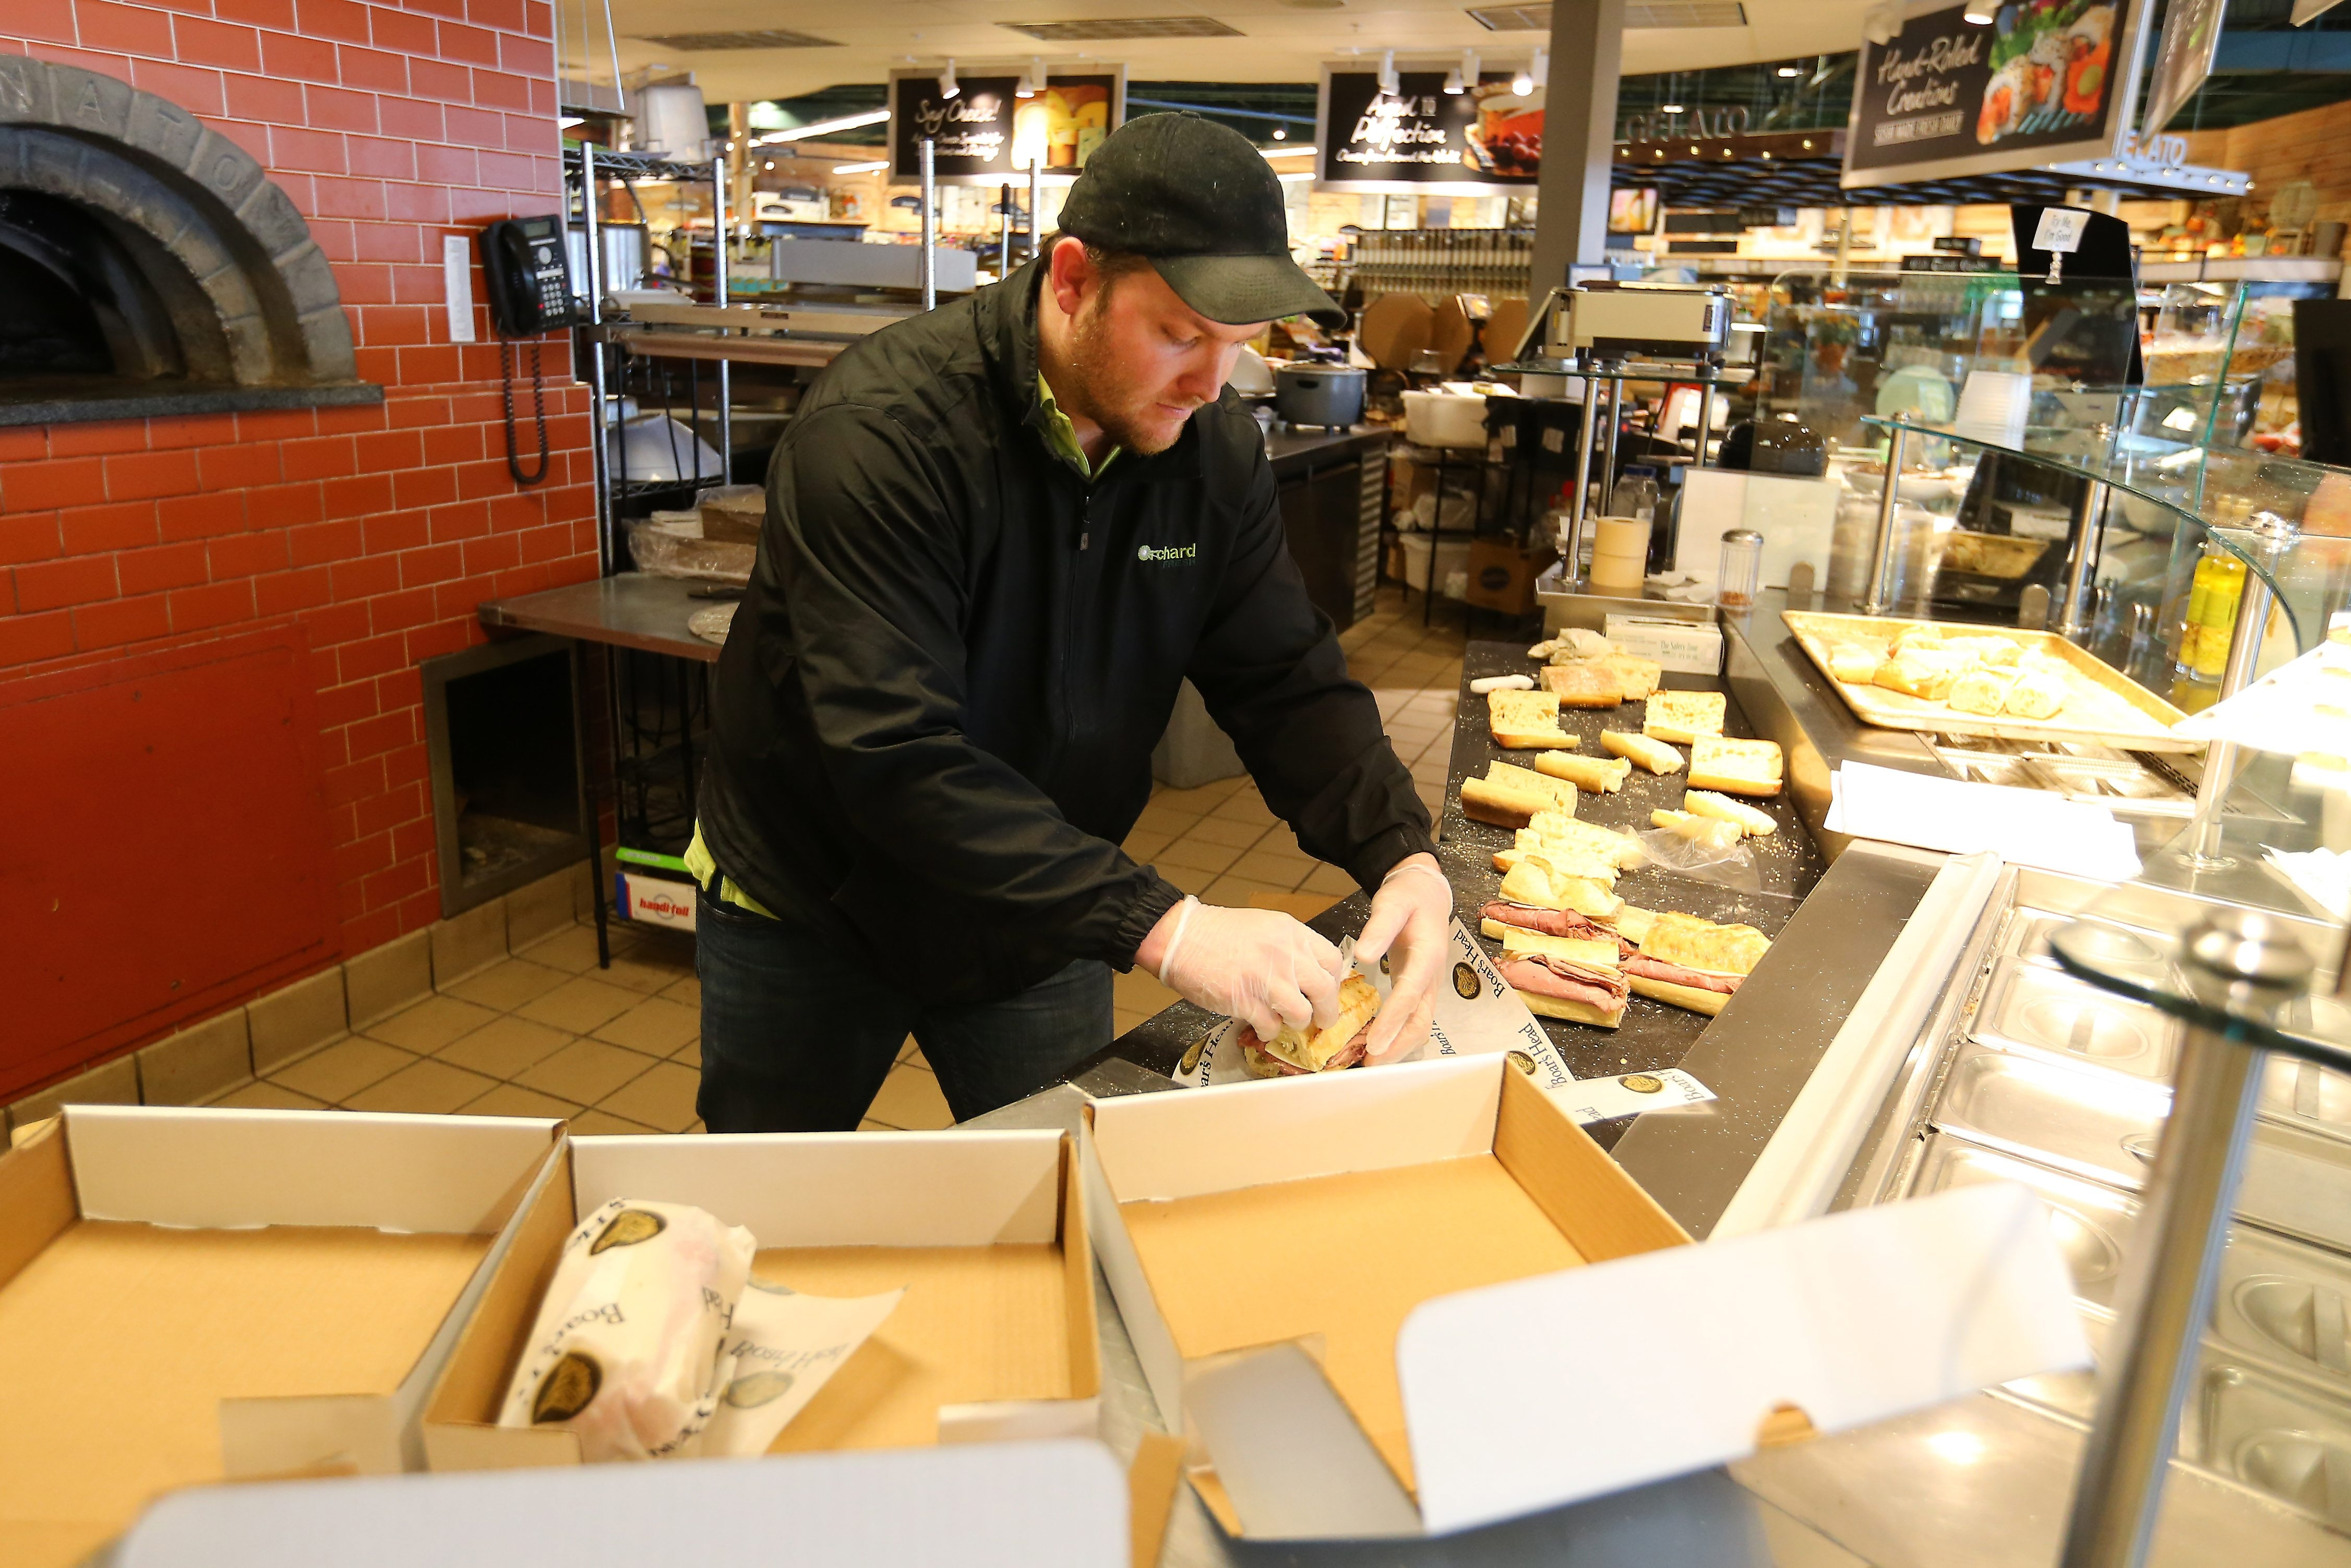 Orchard Fresh store director Kevin Donovan, working more than 48 hours straight, makes sandwiches for staff at the Mercy Ambulatory Care Center in Orchard Park.